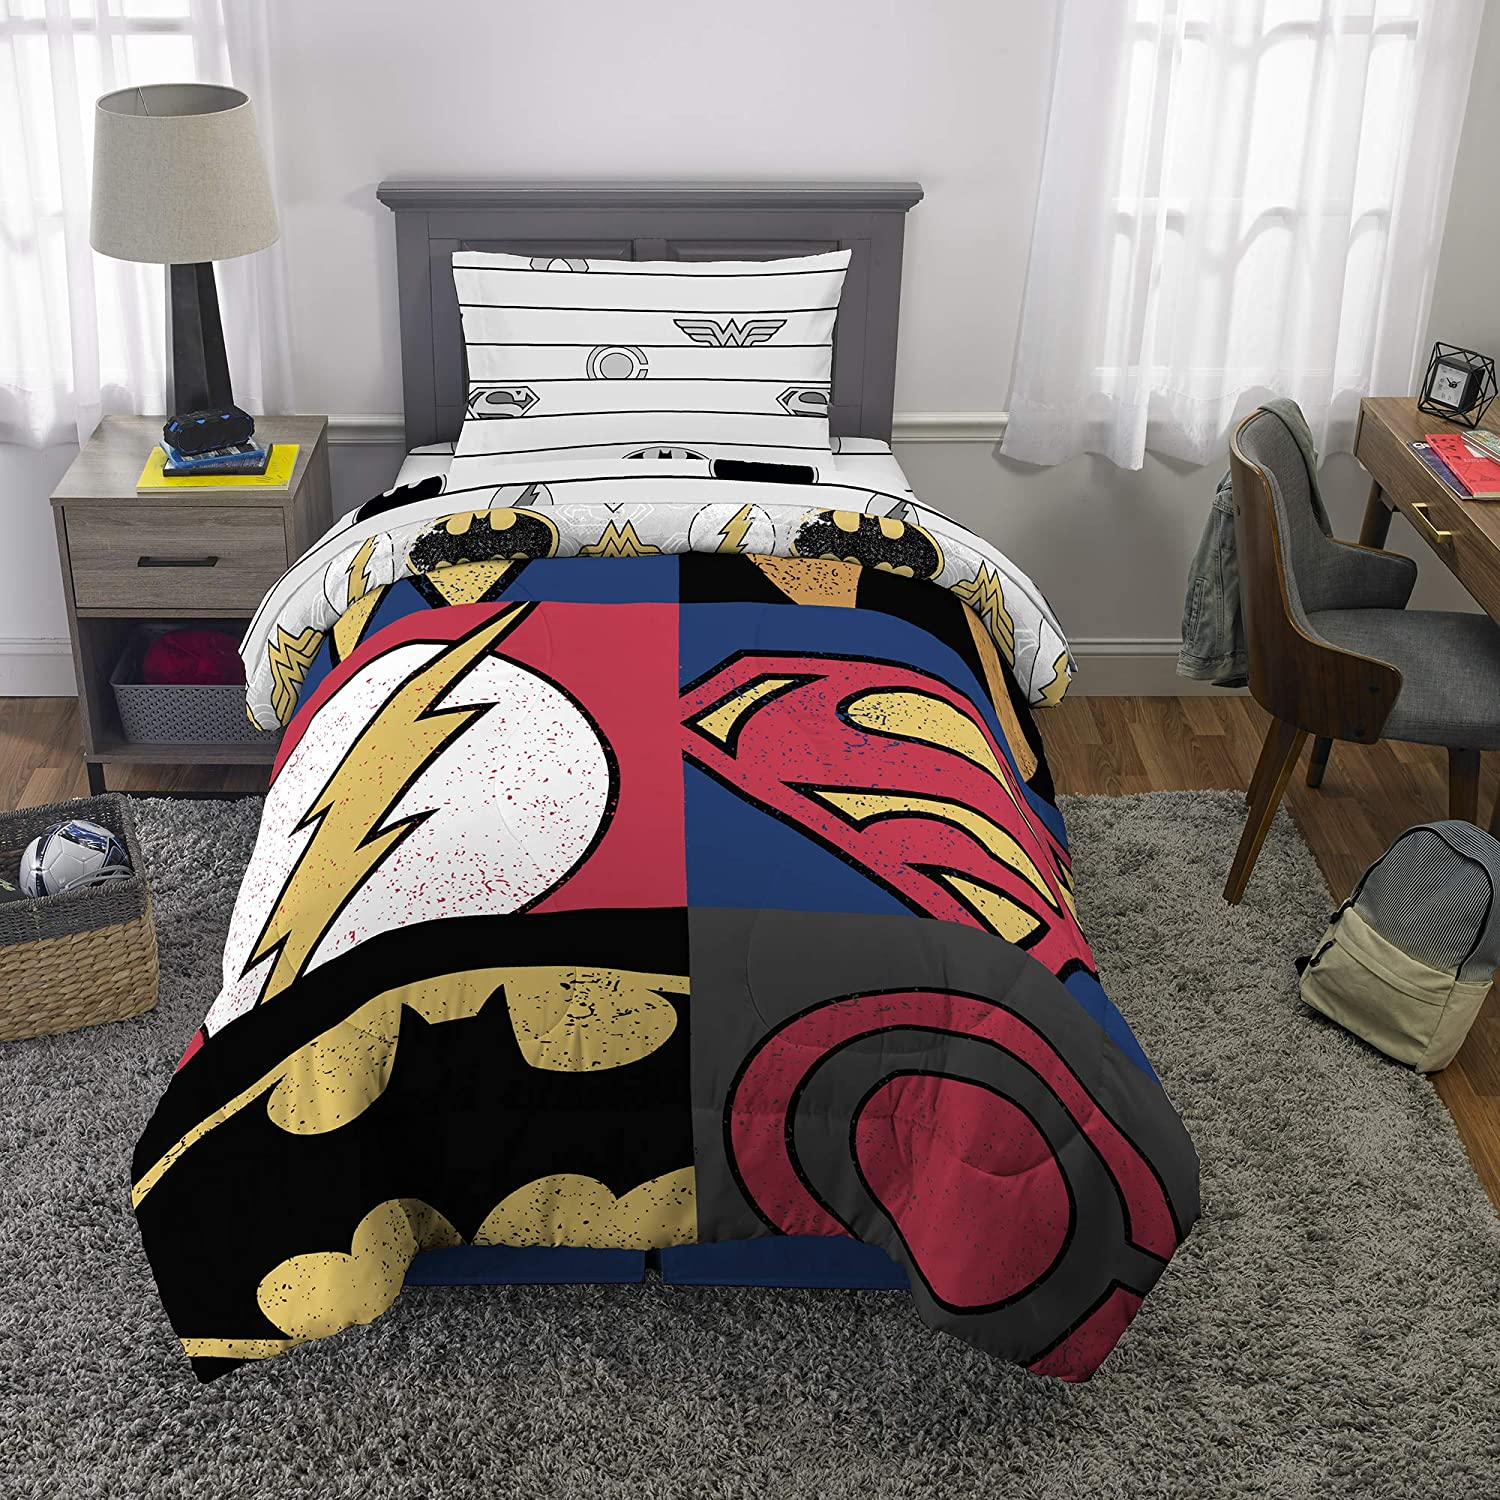 Franco Kids Bedding Super Soft Comforter and Sheet Set, 4 Piece Twin Size, DC Justice League